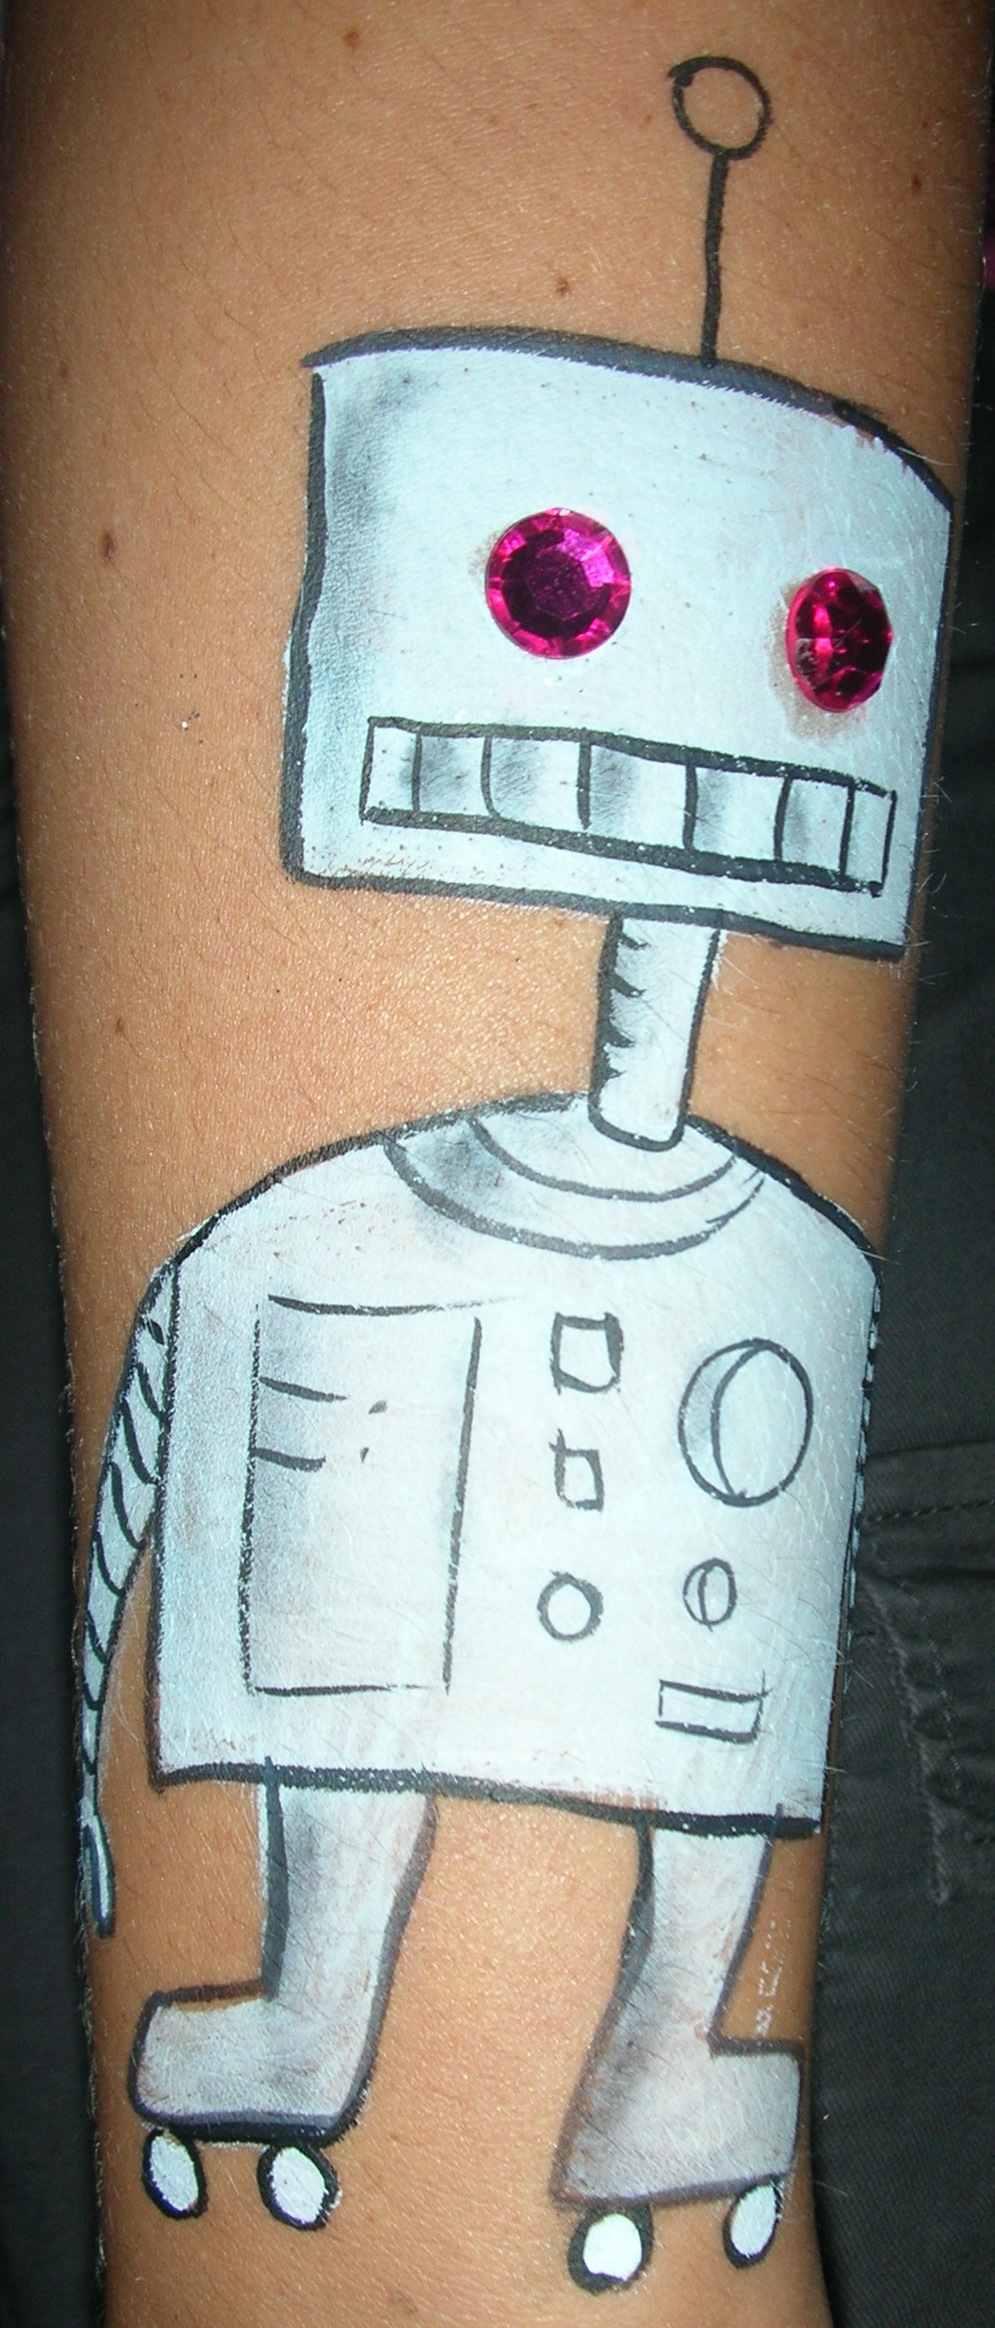 armbot 2_Twistertainment2011.jpg